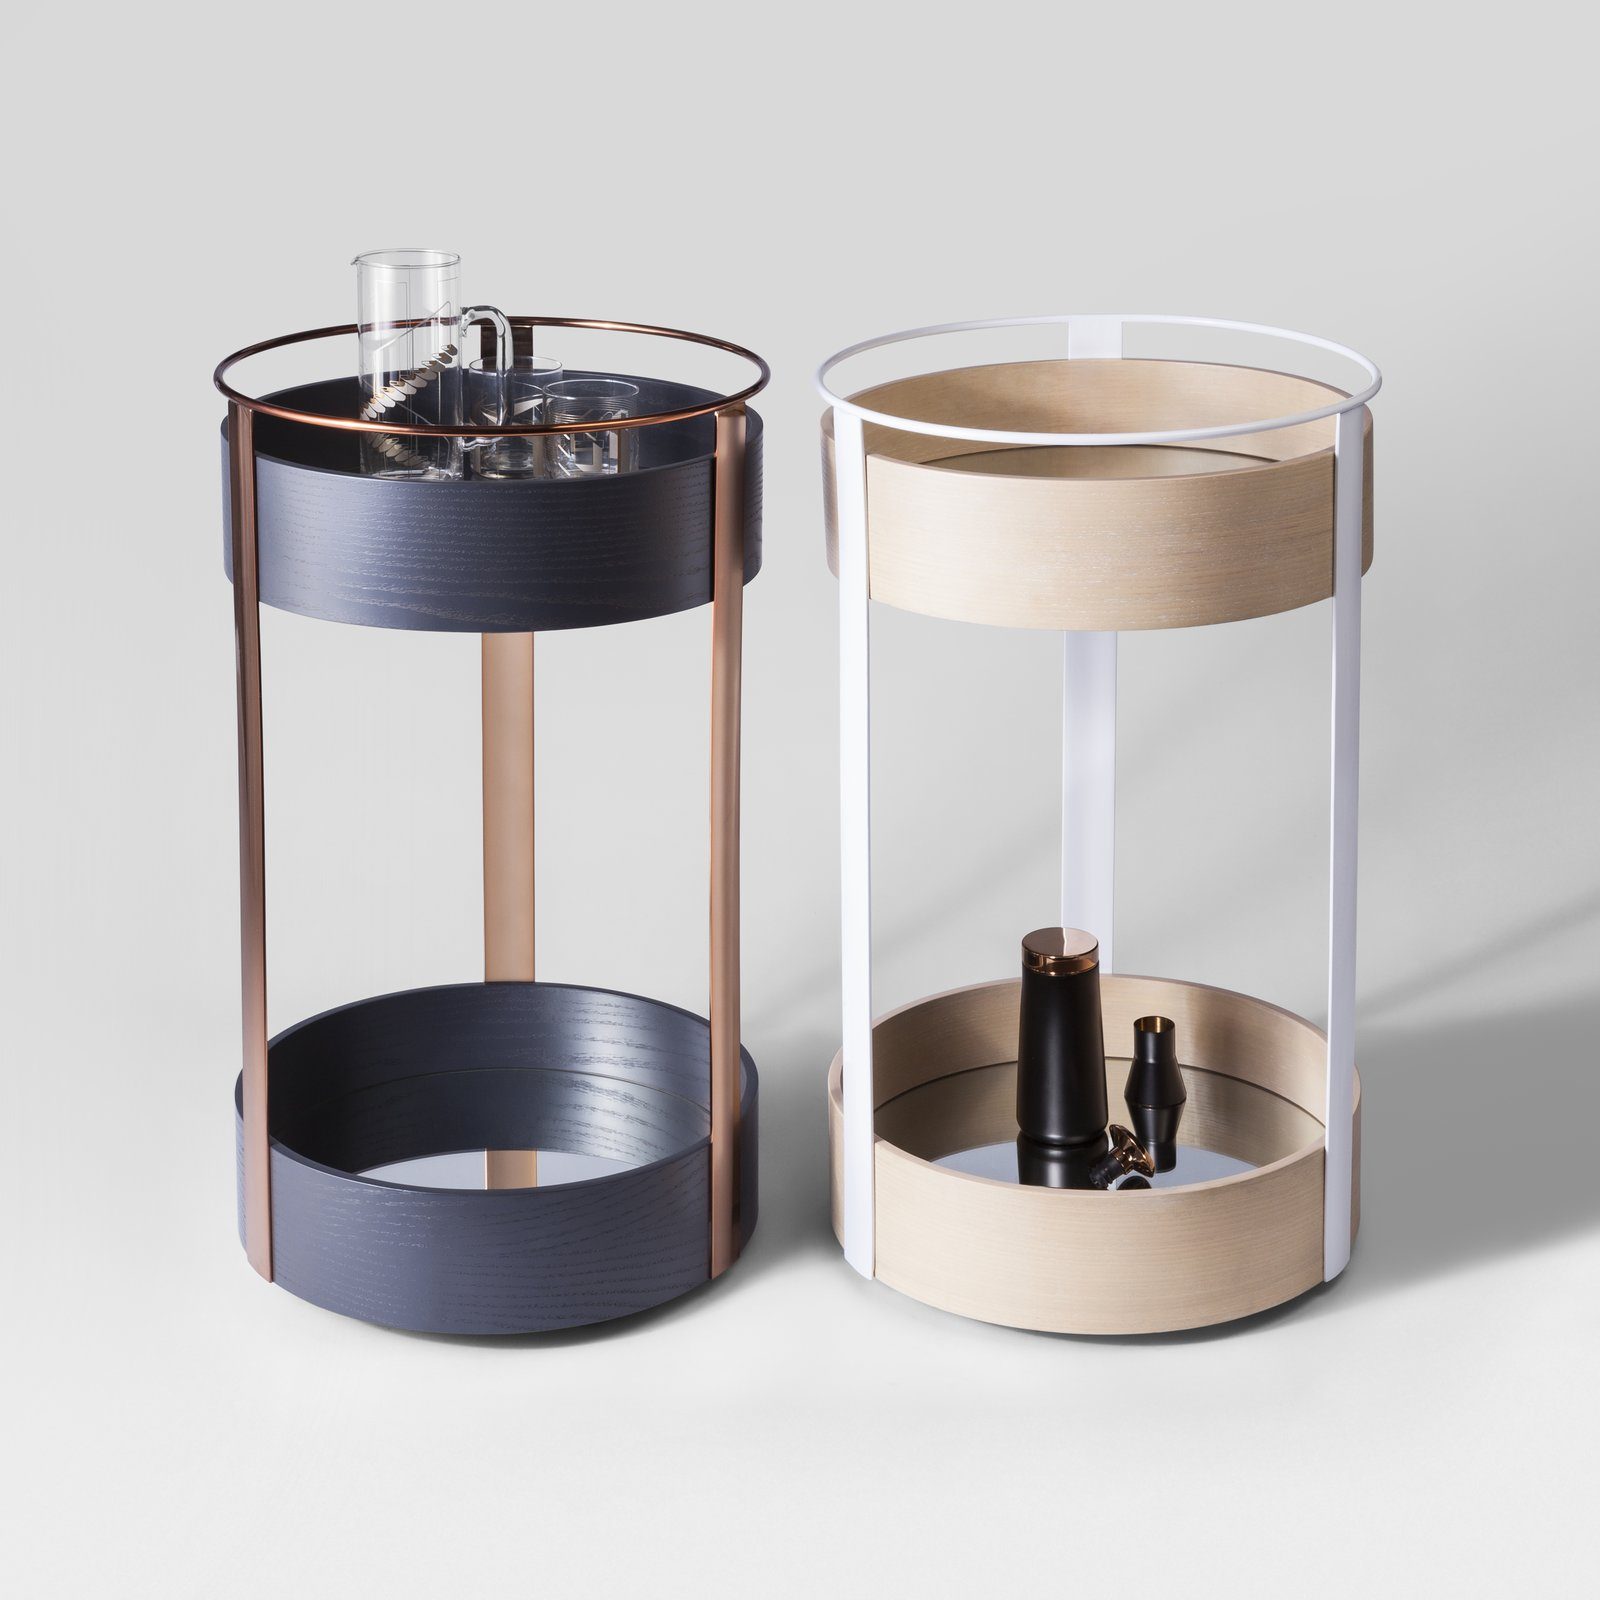 """Bar Trolley, $149.99. Deam + Dine designed each piece to be versatile and """"aesthetically durable,"""" like this circular, two-tier bar cart made from mirrored, wooden trays and a powder-coated steel frame. Dwell Leaps Off the Page With a New Collection For Target - Photo 6 of 6"""